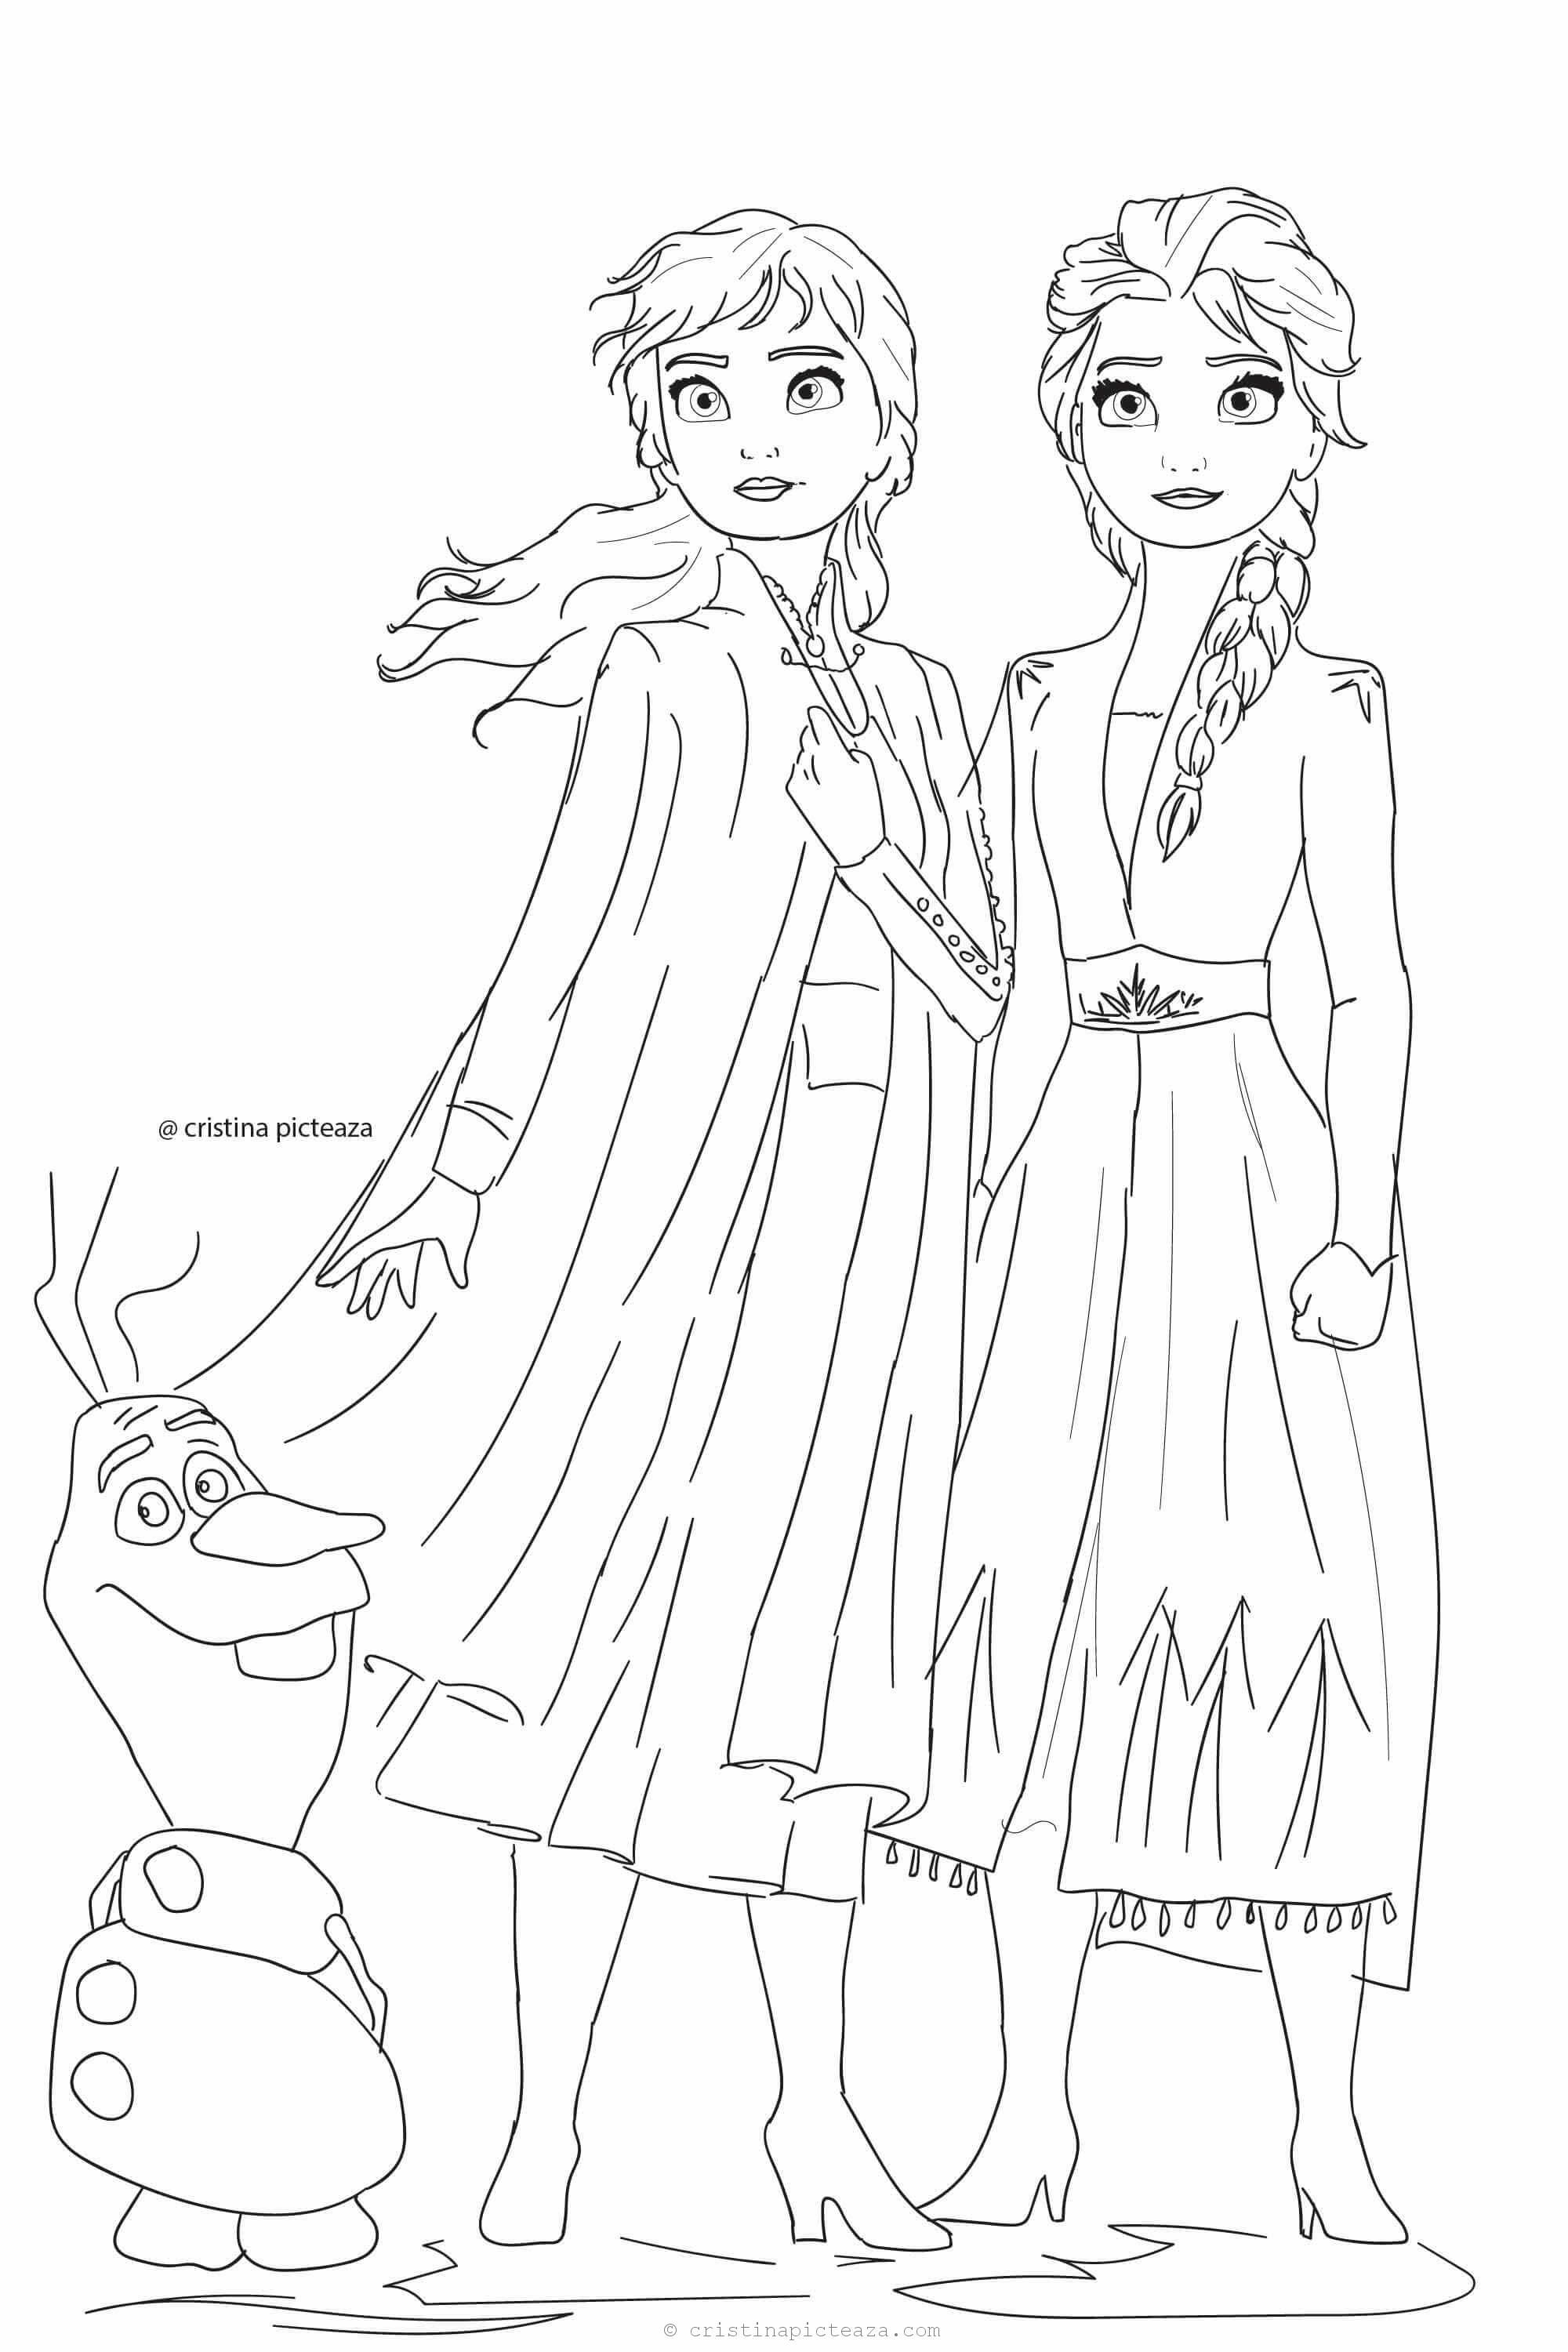 Frozen 2 Coloring Pages Ana Elsa Coloring Pages Frozen Coloring Pages Disney Princess Coloring Pages